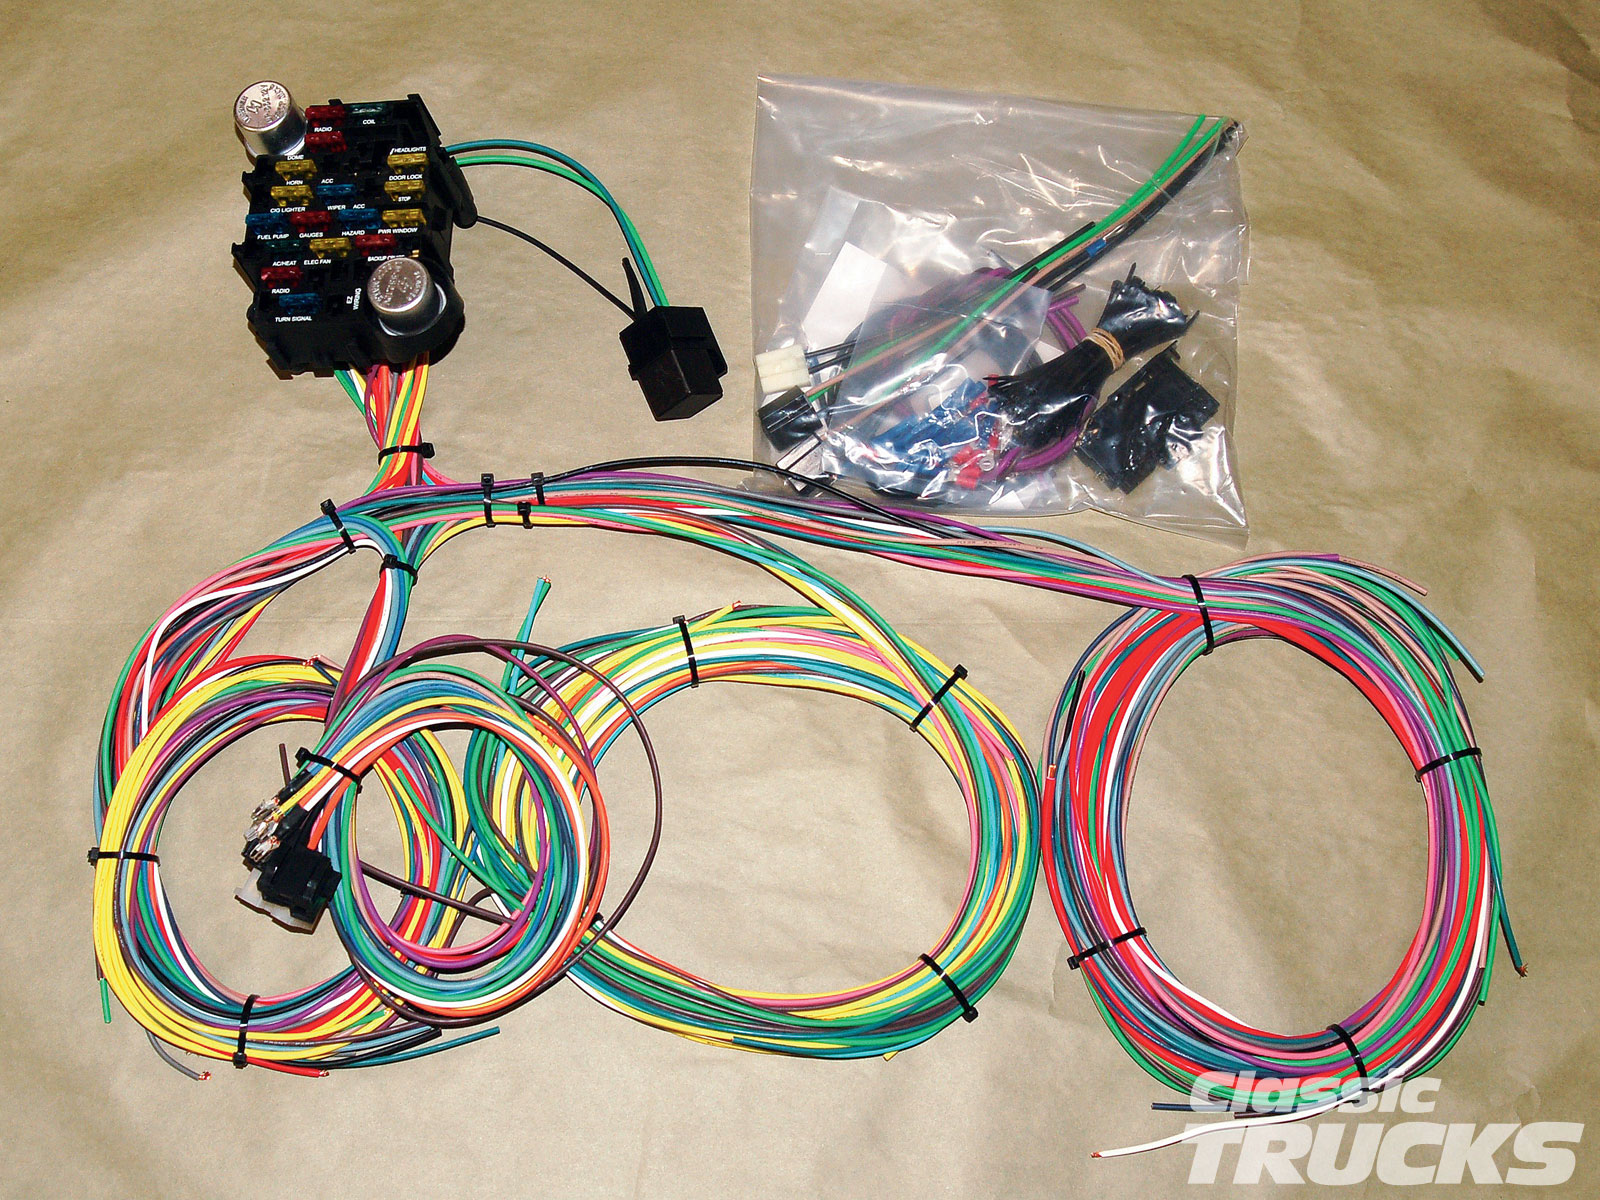 1010clt 02 o aftermarket wiring harness install kit?resize\\\=665%2C499 painless wiring harness australia tamahuproject org painless wiring harness australia at metegol.co